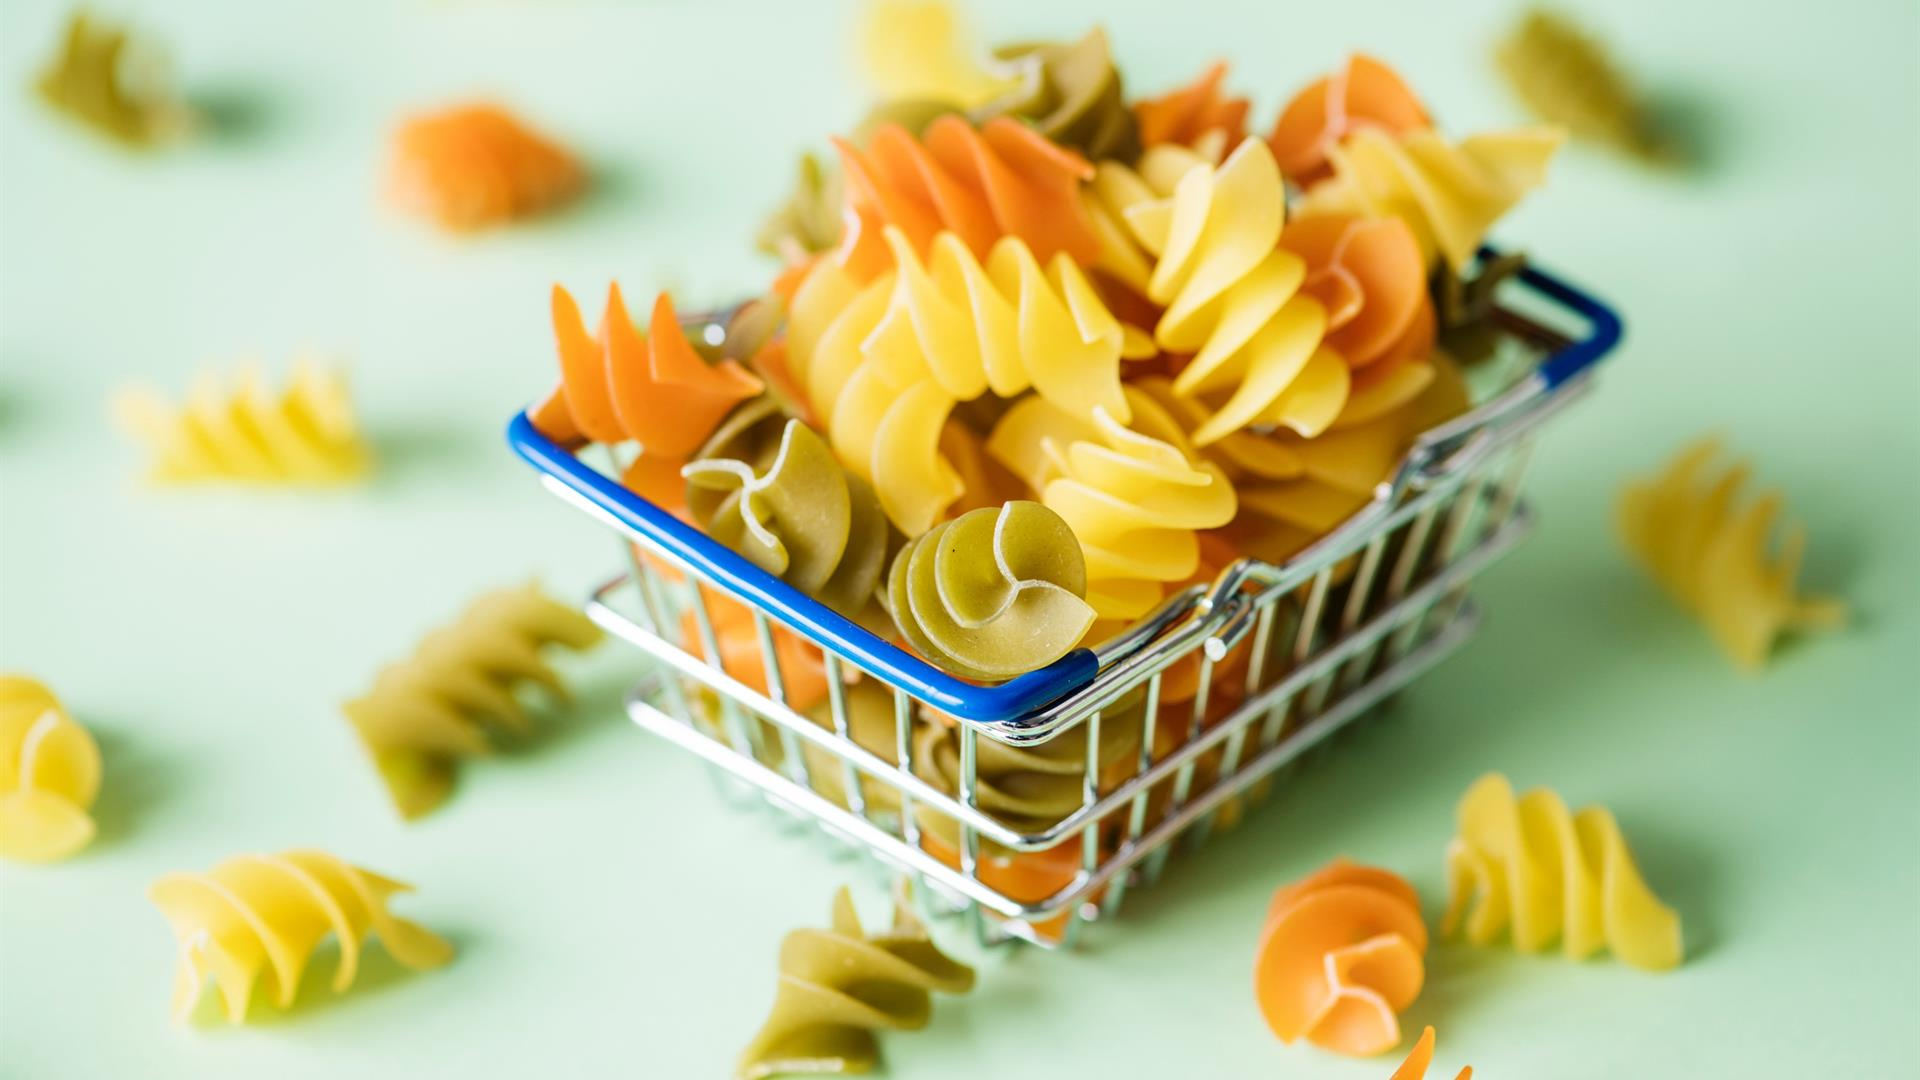 Basket Bright Carbohydrate 1073767